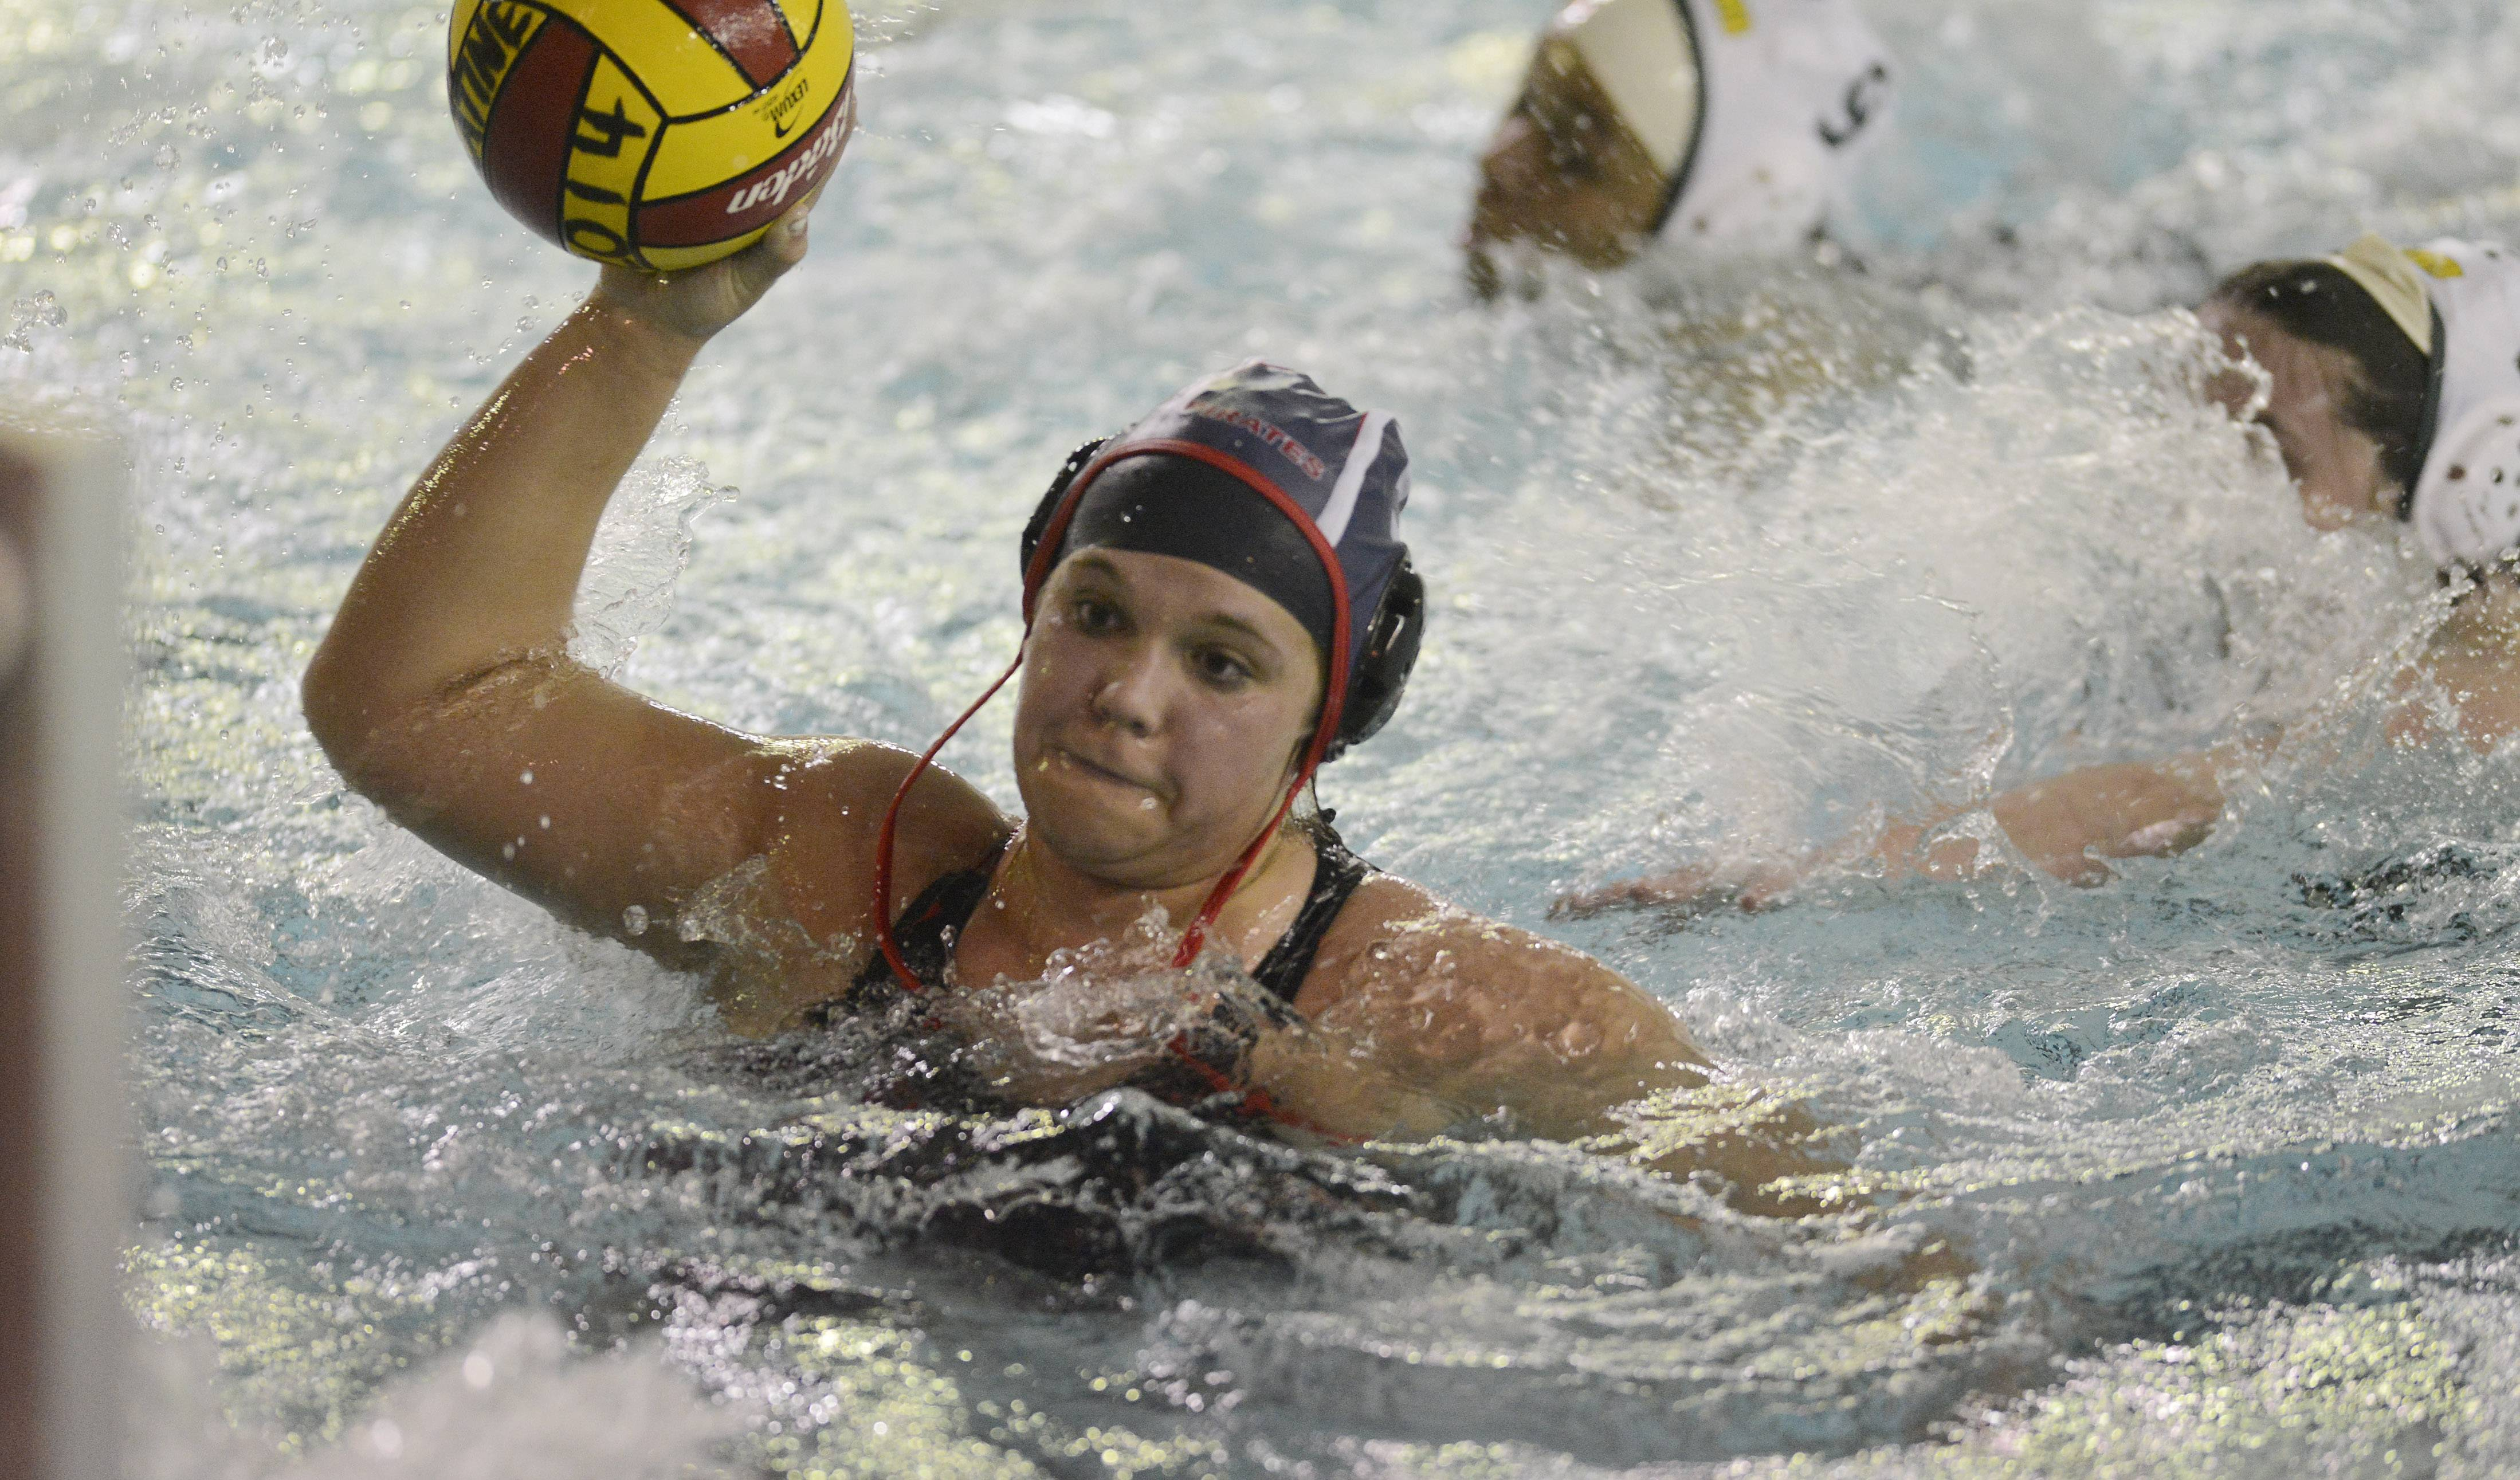 Palatine's Rachel Chumbook shoots during Wednesday's water polo game against Fremd.